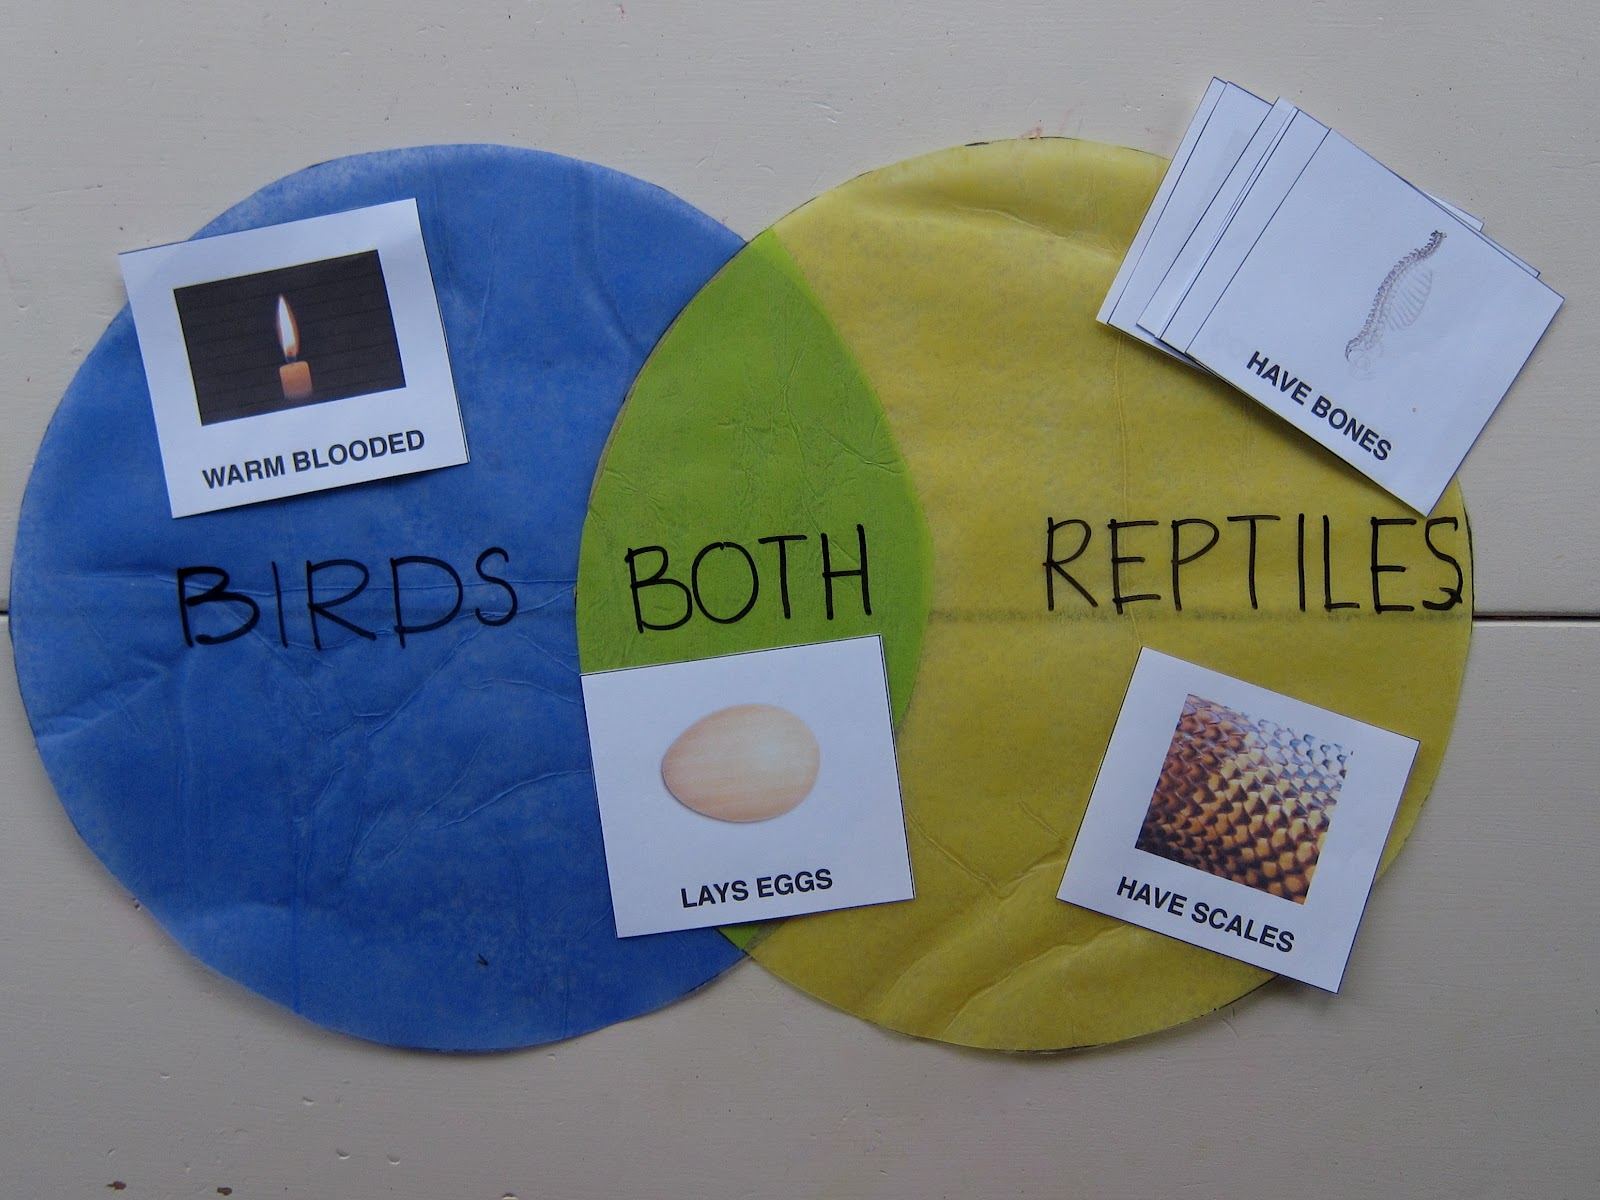 Preschool syllabus birds birdreptile venn diagram skills practiced classification scientific knowledge comparing i have made the cards pdf available here pooptronica Image collections